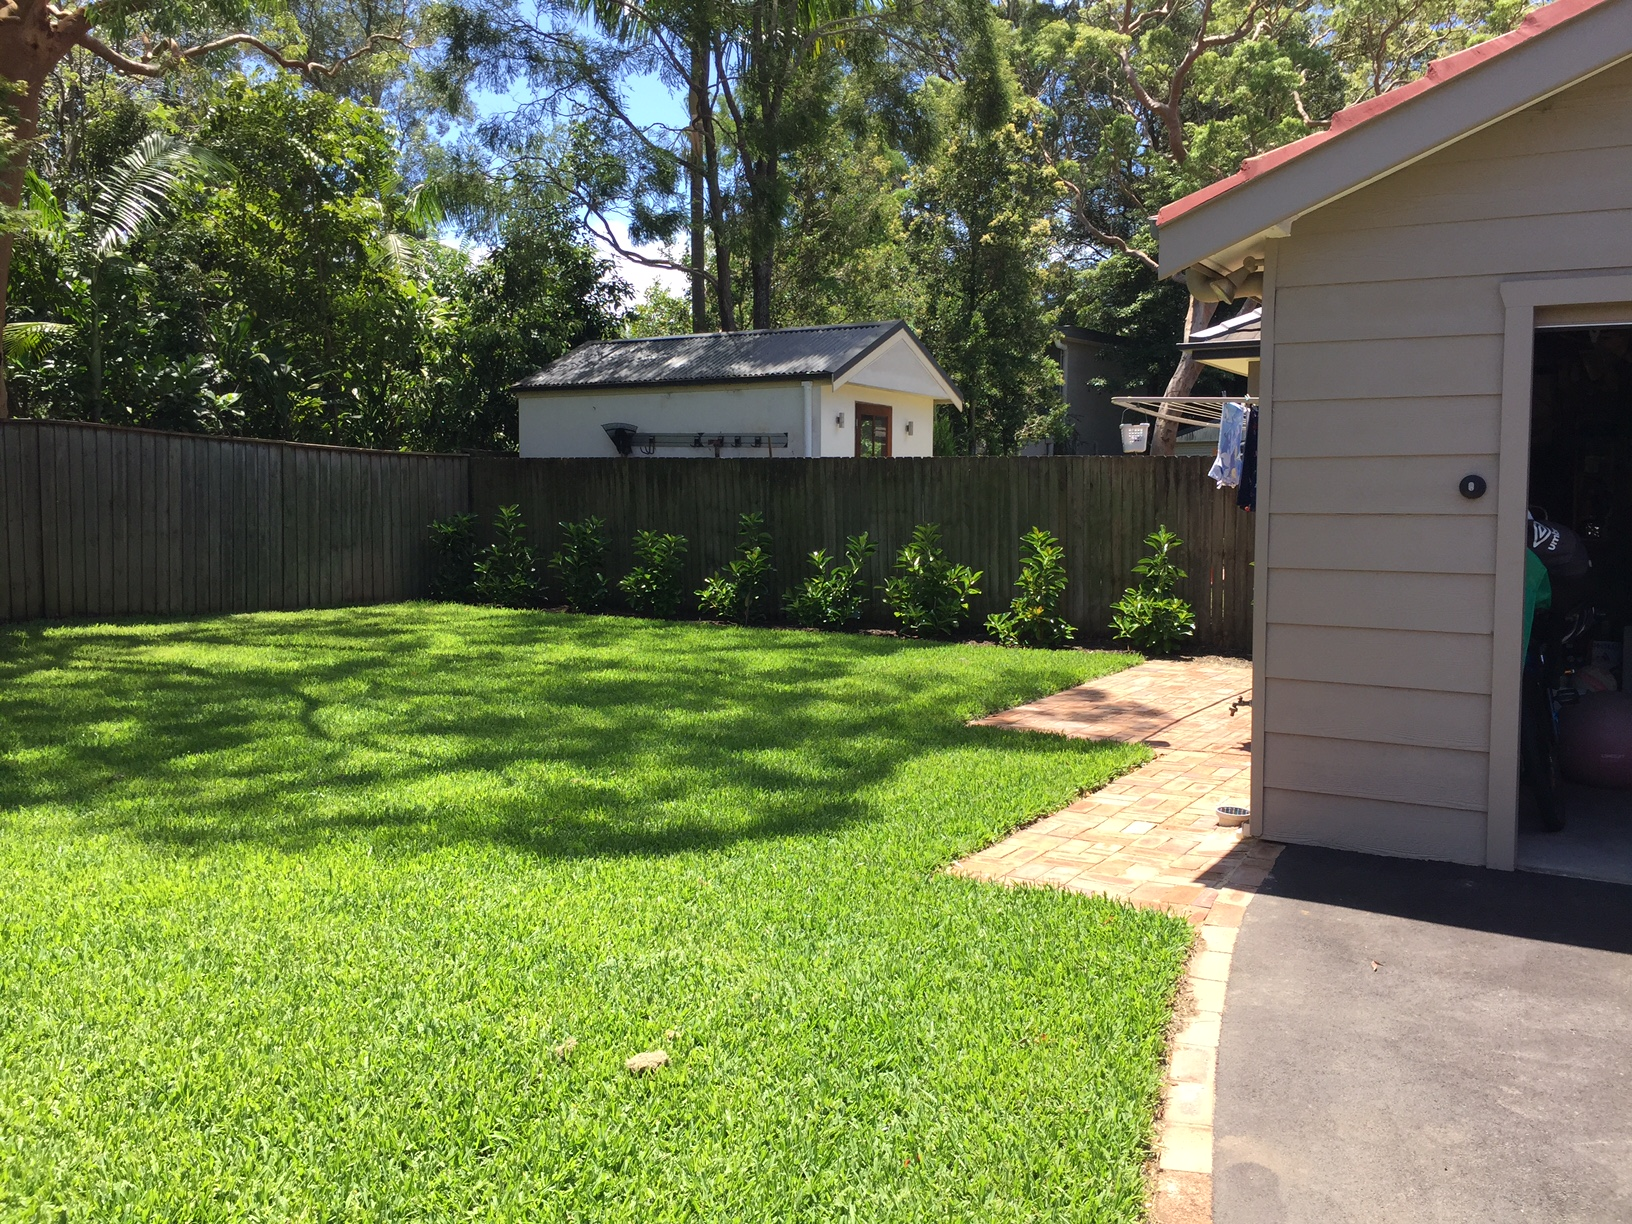 Turf Supplies & Turf Laying Frenchs Forest by Northside Tree & Garden